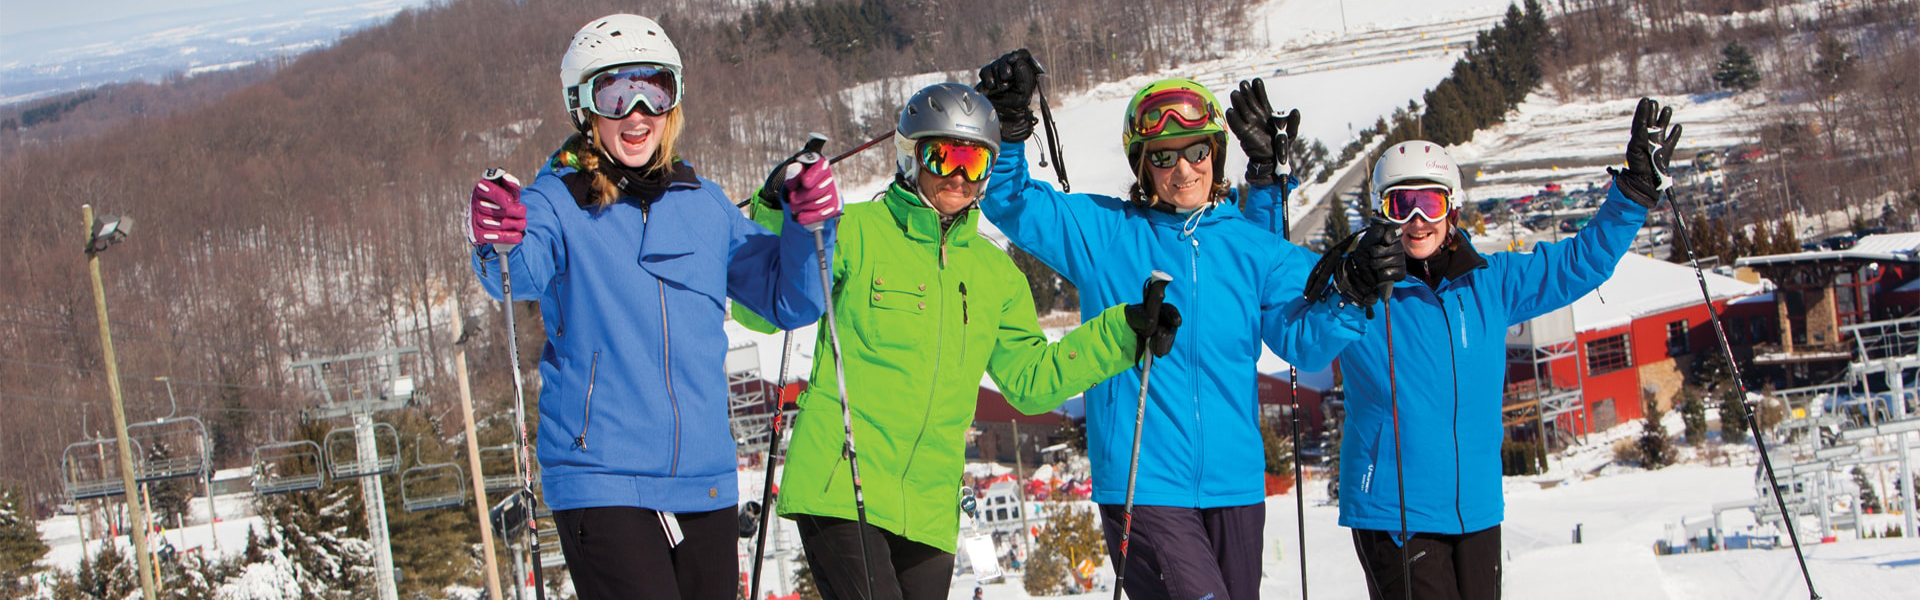 Four skiiers wearing helmets and goggles pose atop Bear Creek Mountain Resort in Berks County Pennsylvania